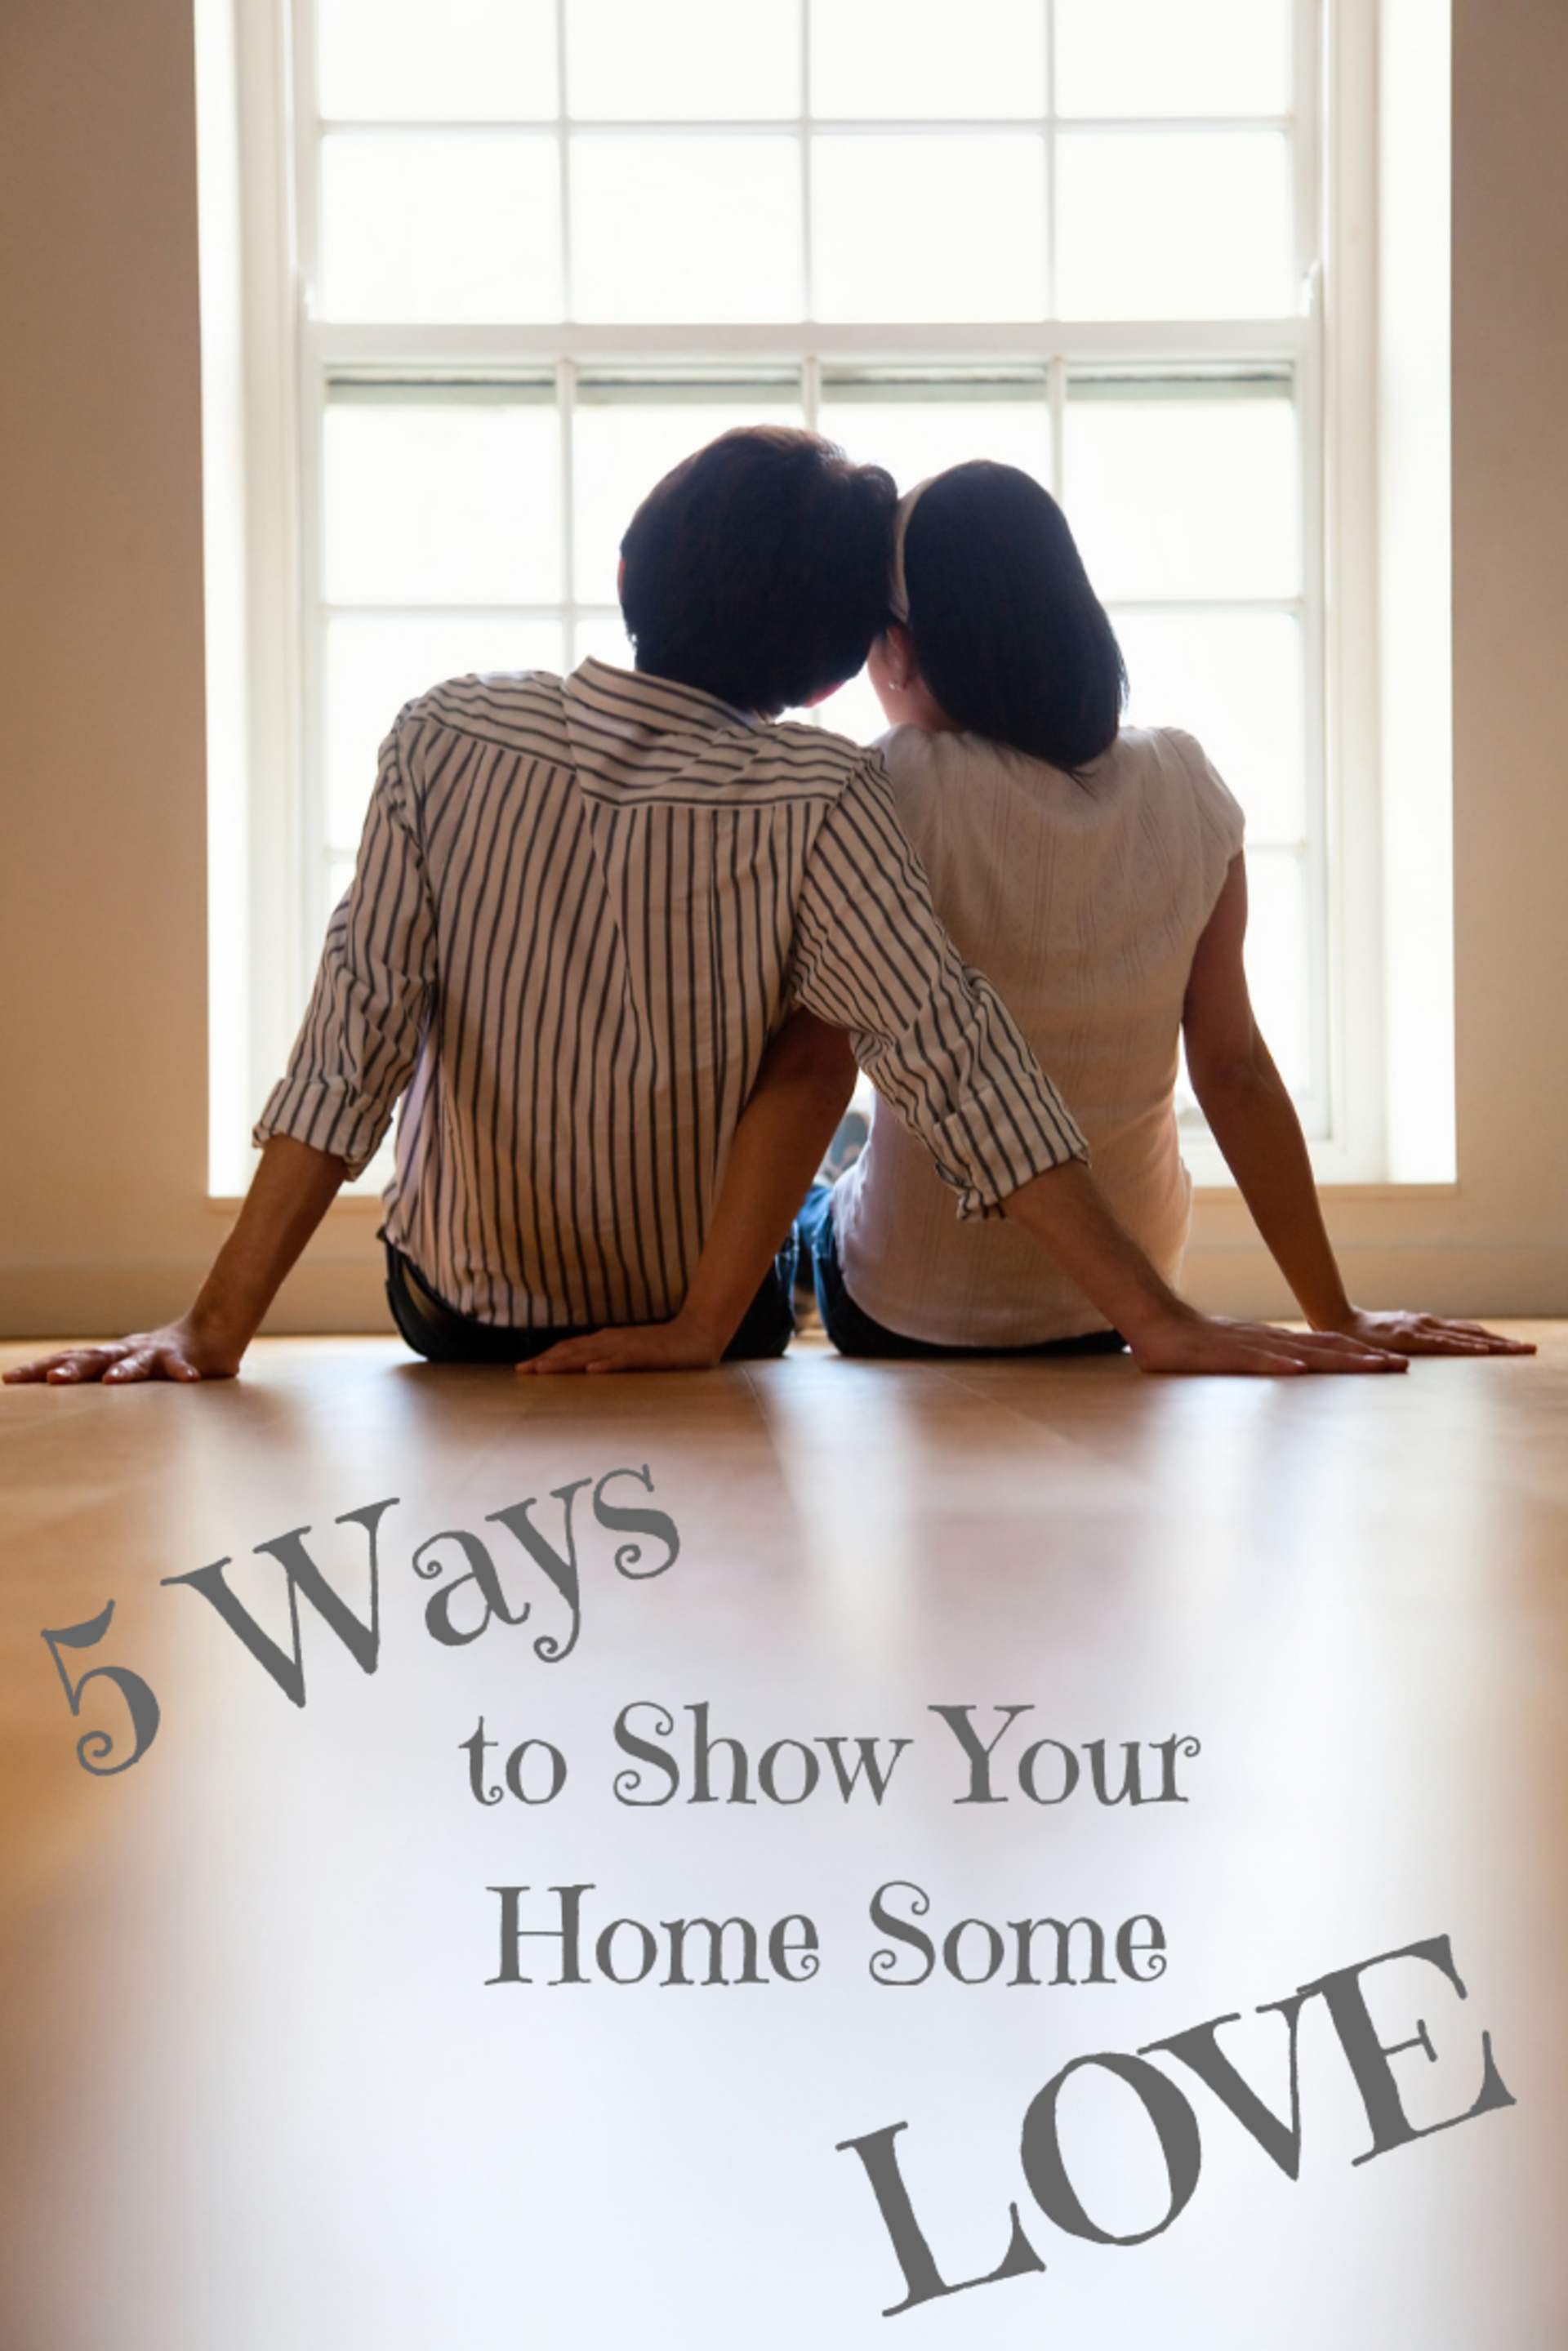 5 Ways to Show Your Home Some Love